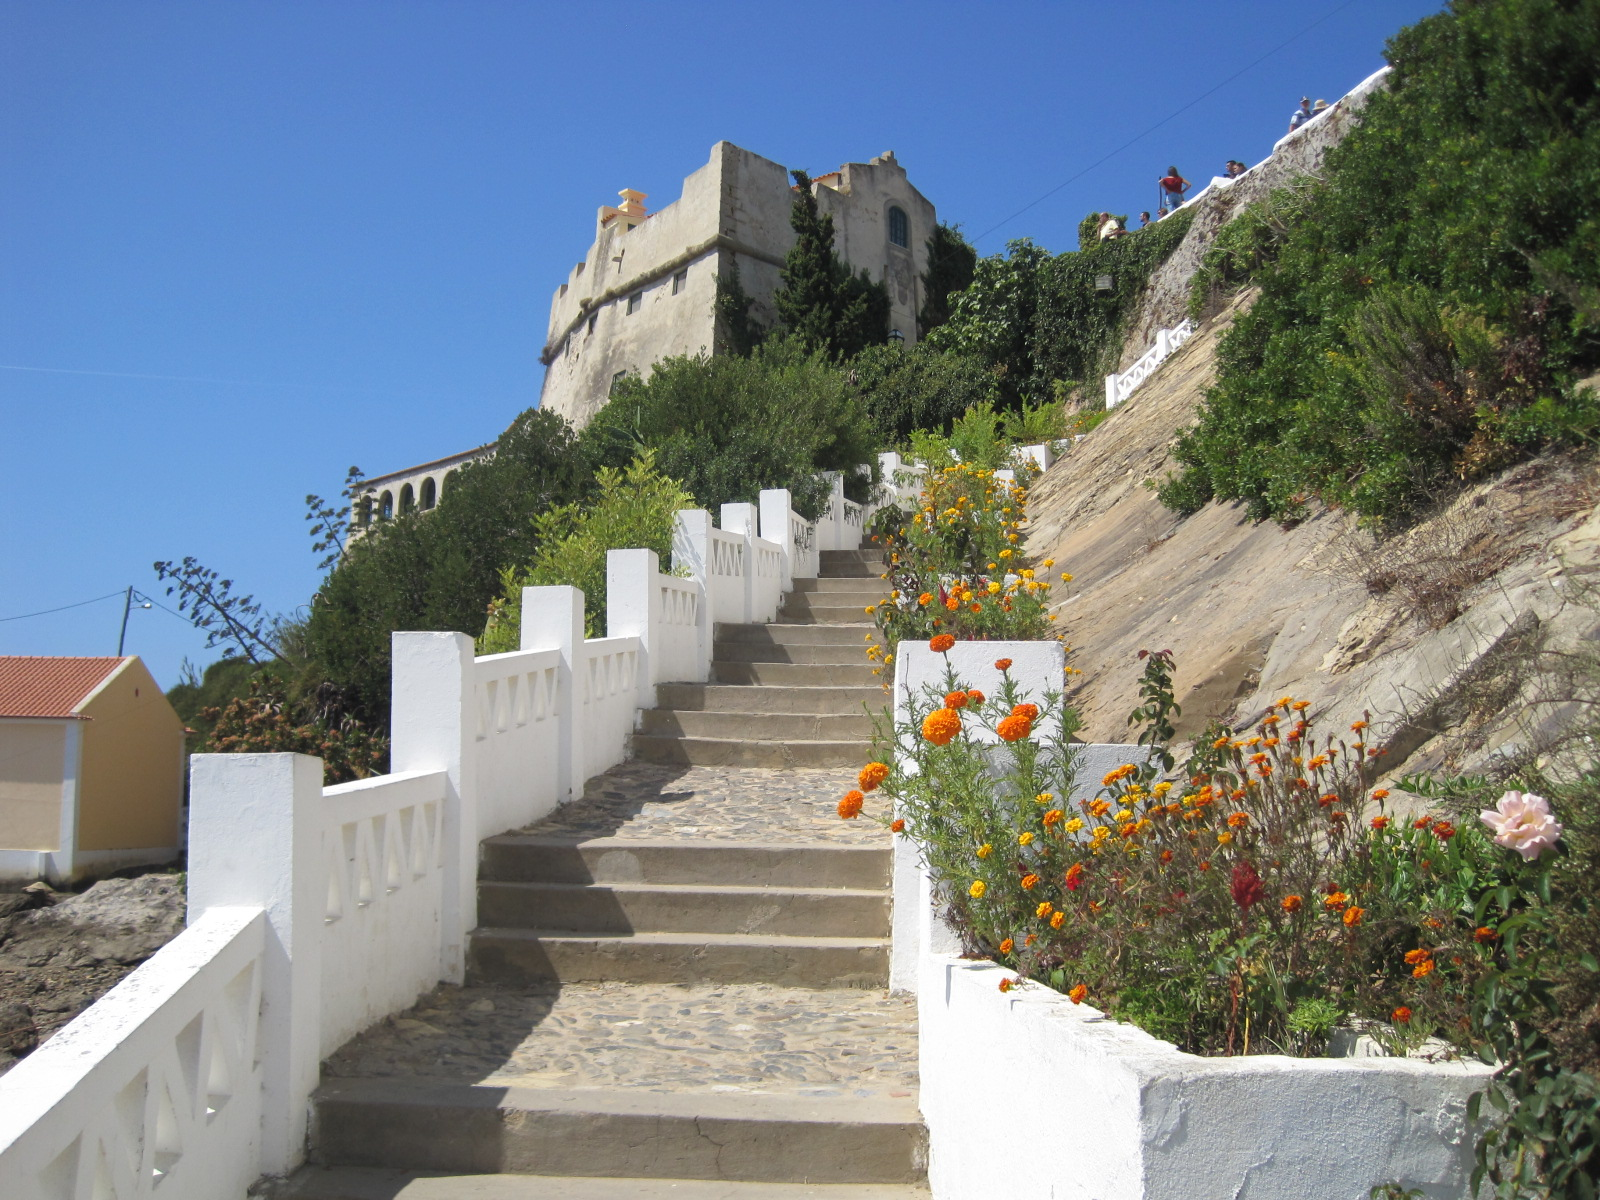 Time to mount the steps back to the castelo